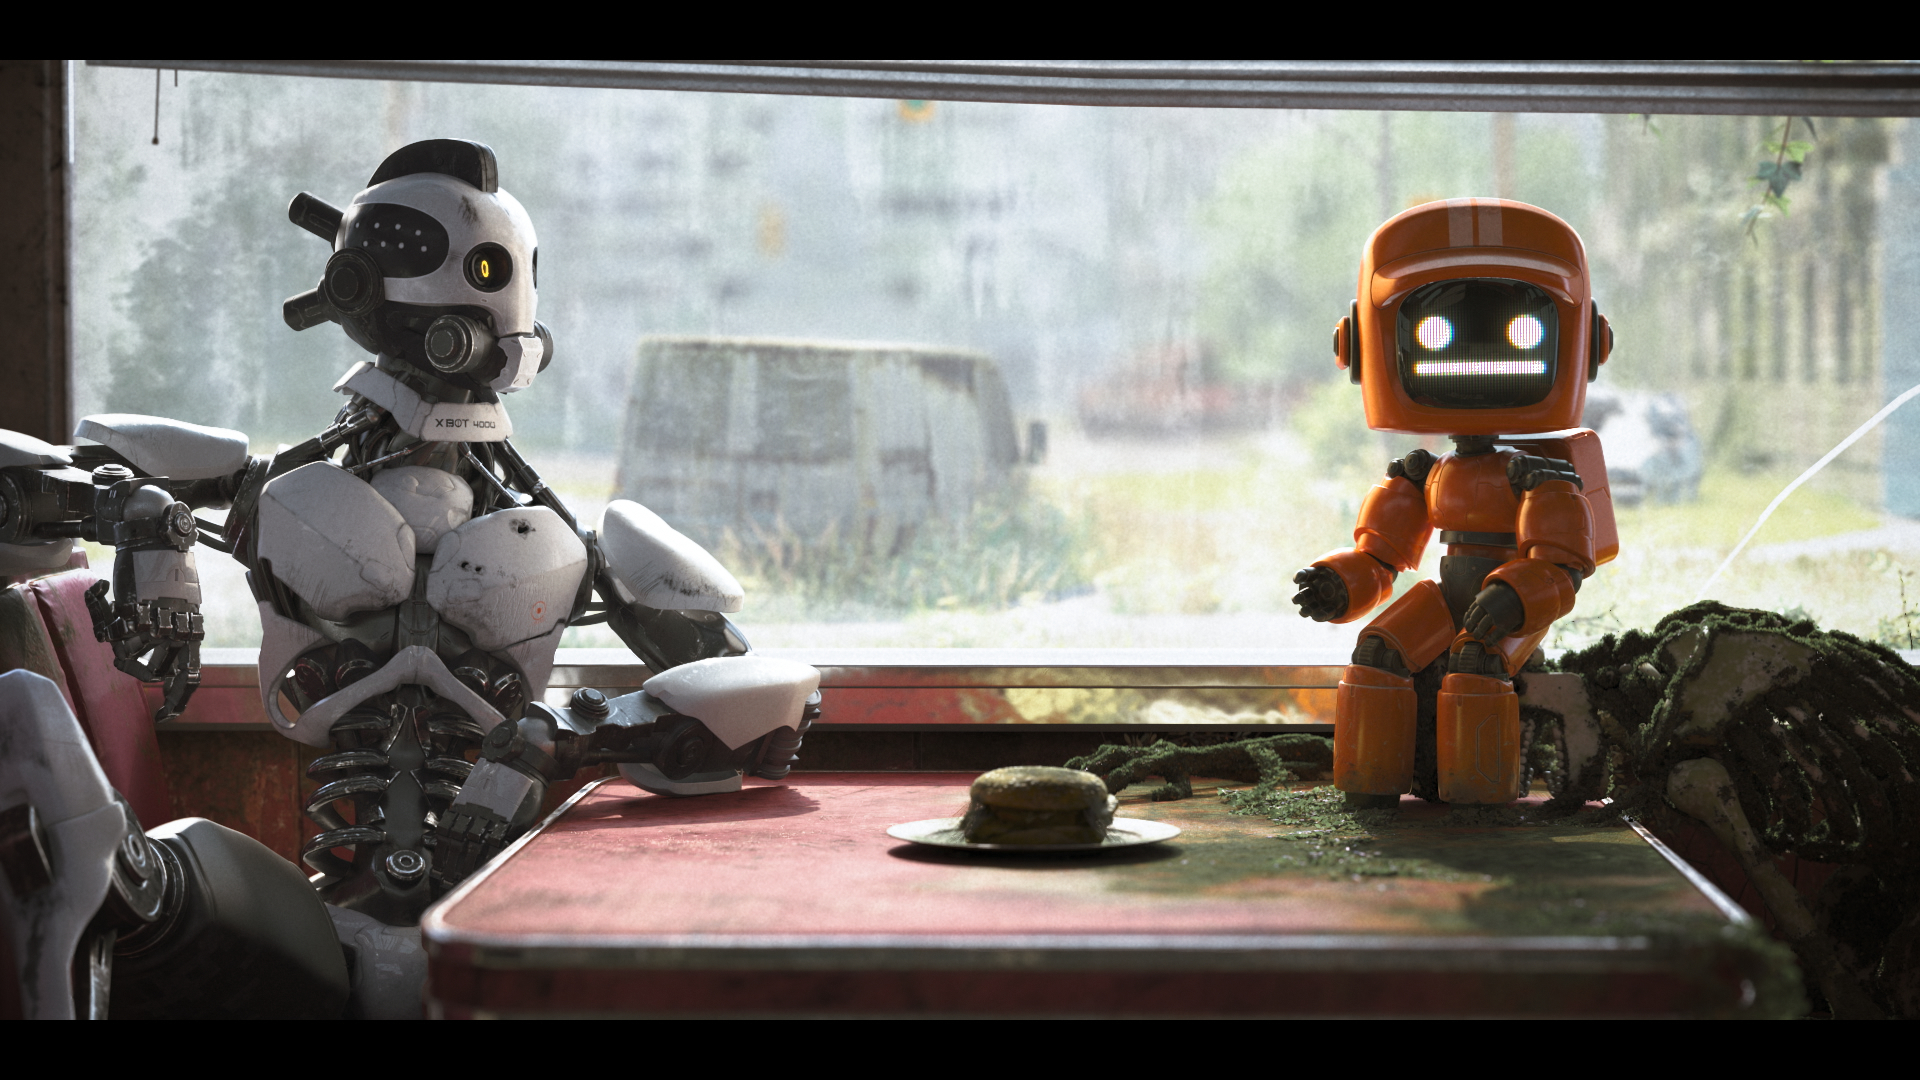 Netflix denies changing episode order of Love, Death & Robots based on sexuality